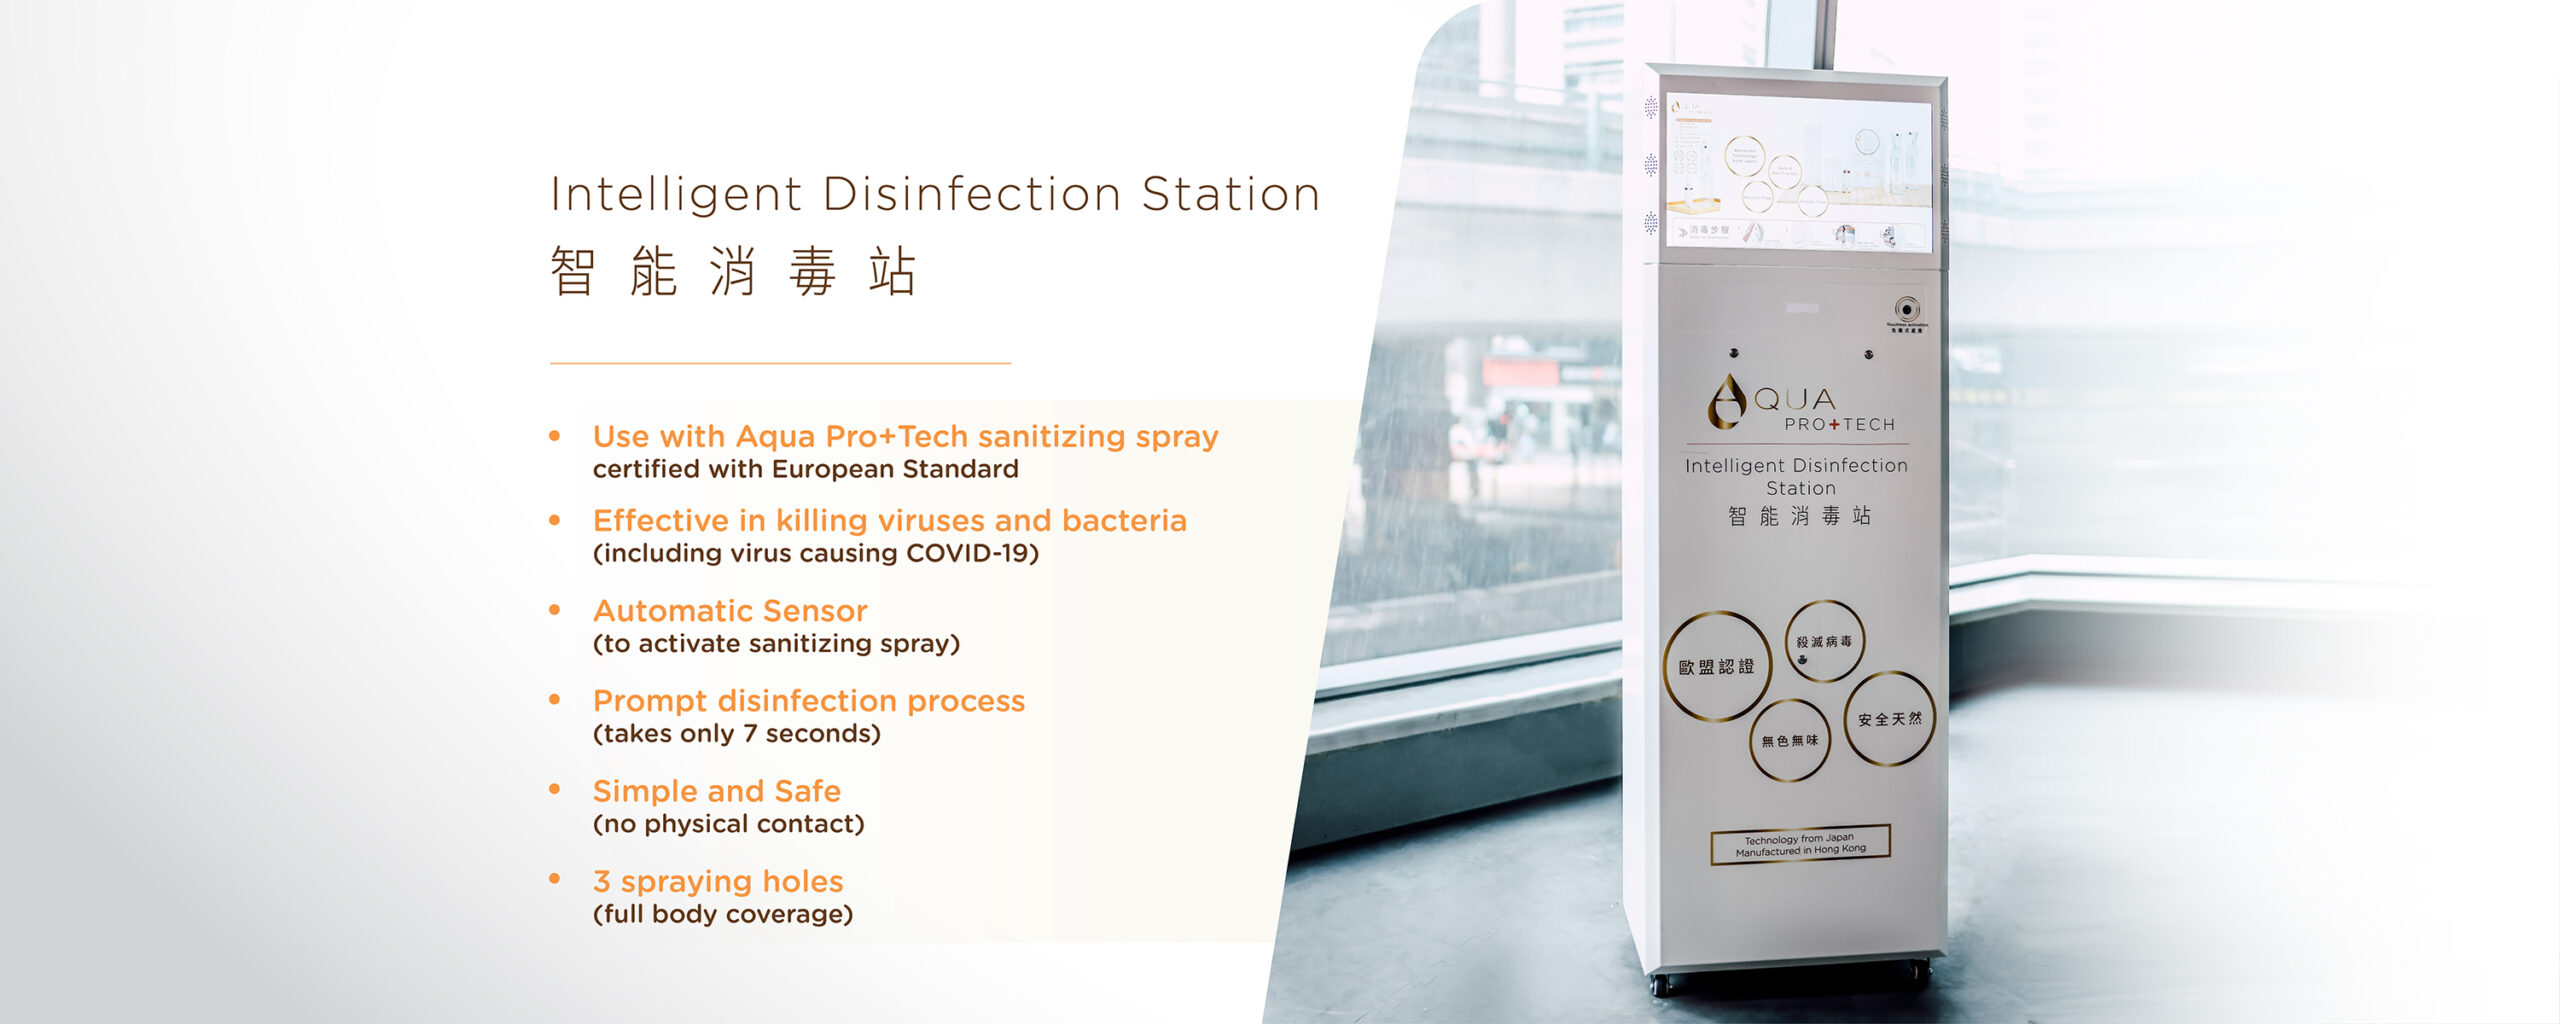 AQUA PROTECH Intelligent Disinfection Station